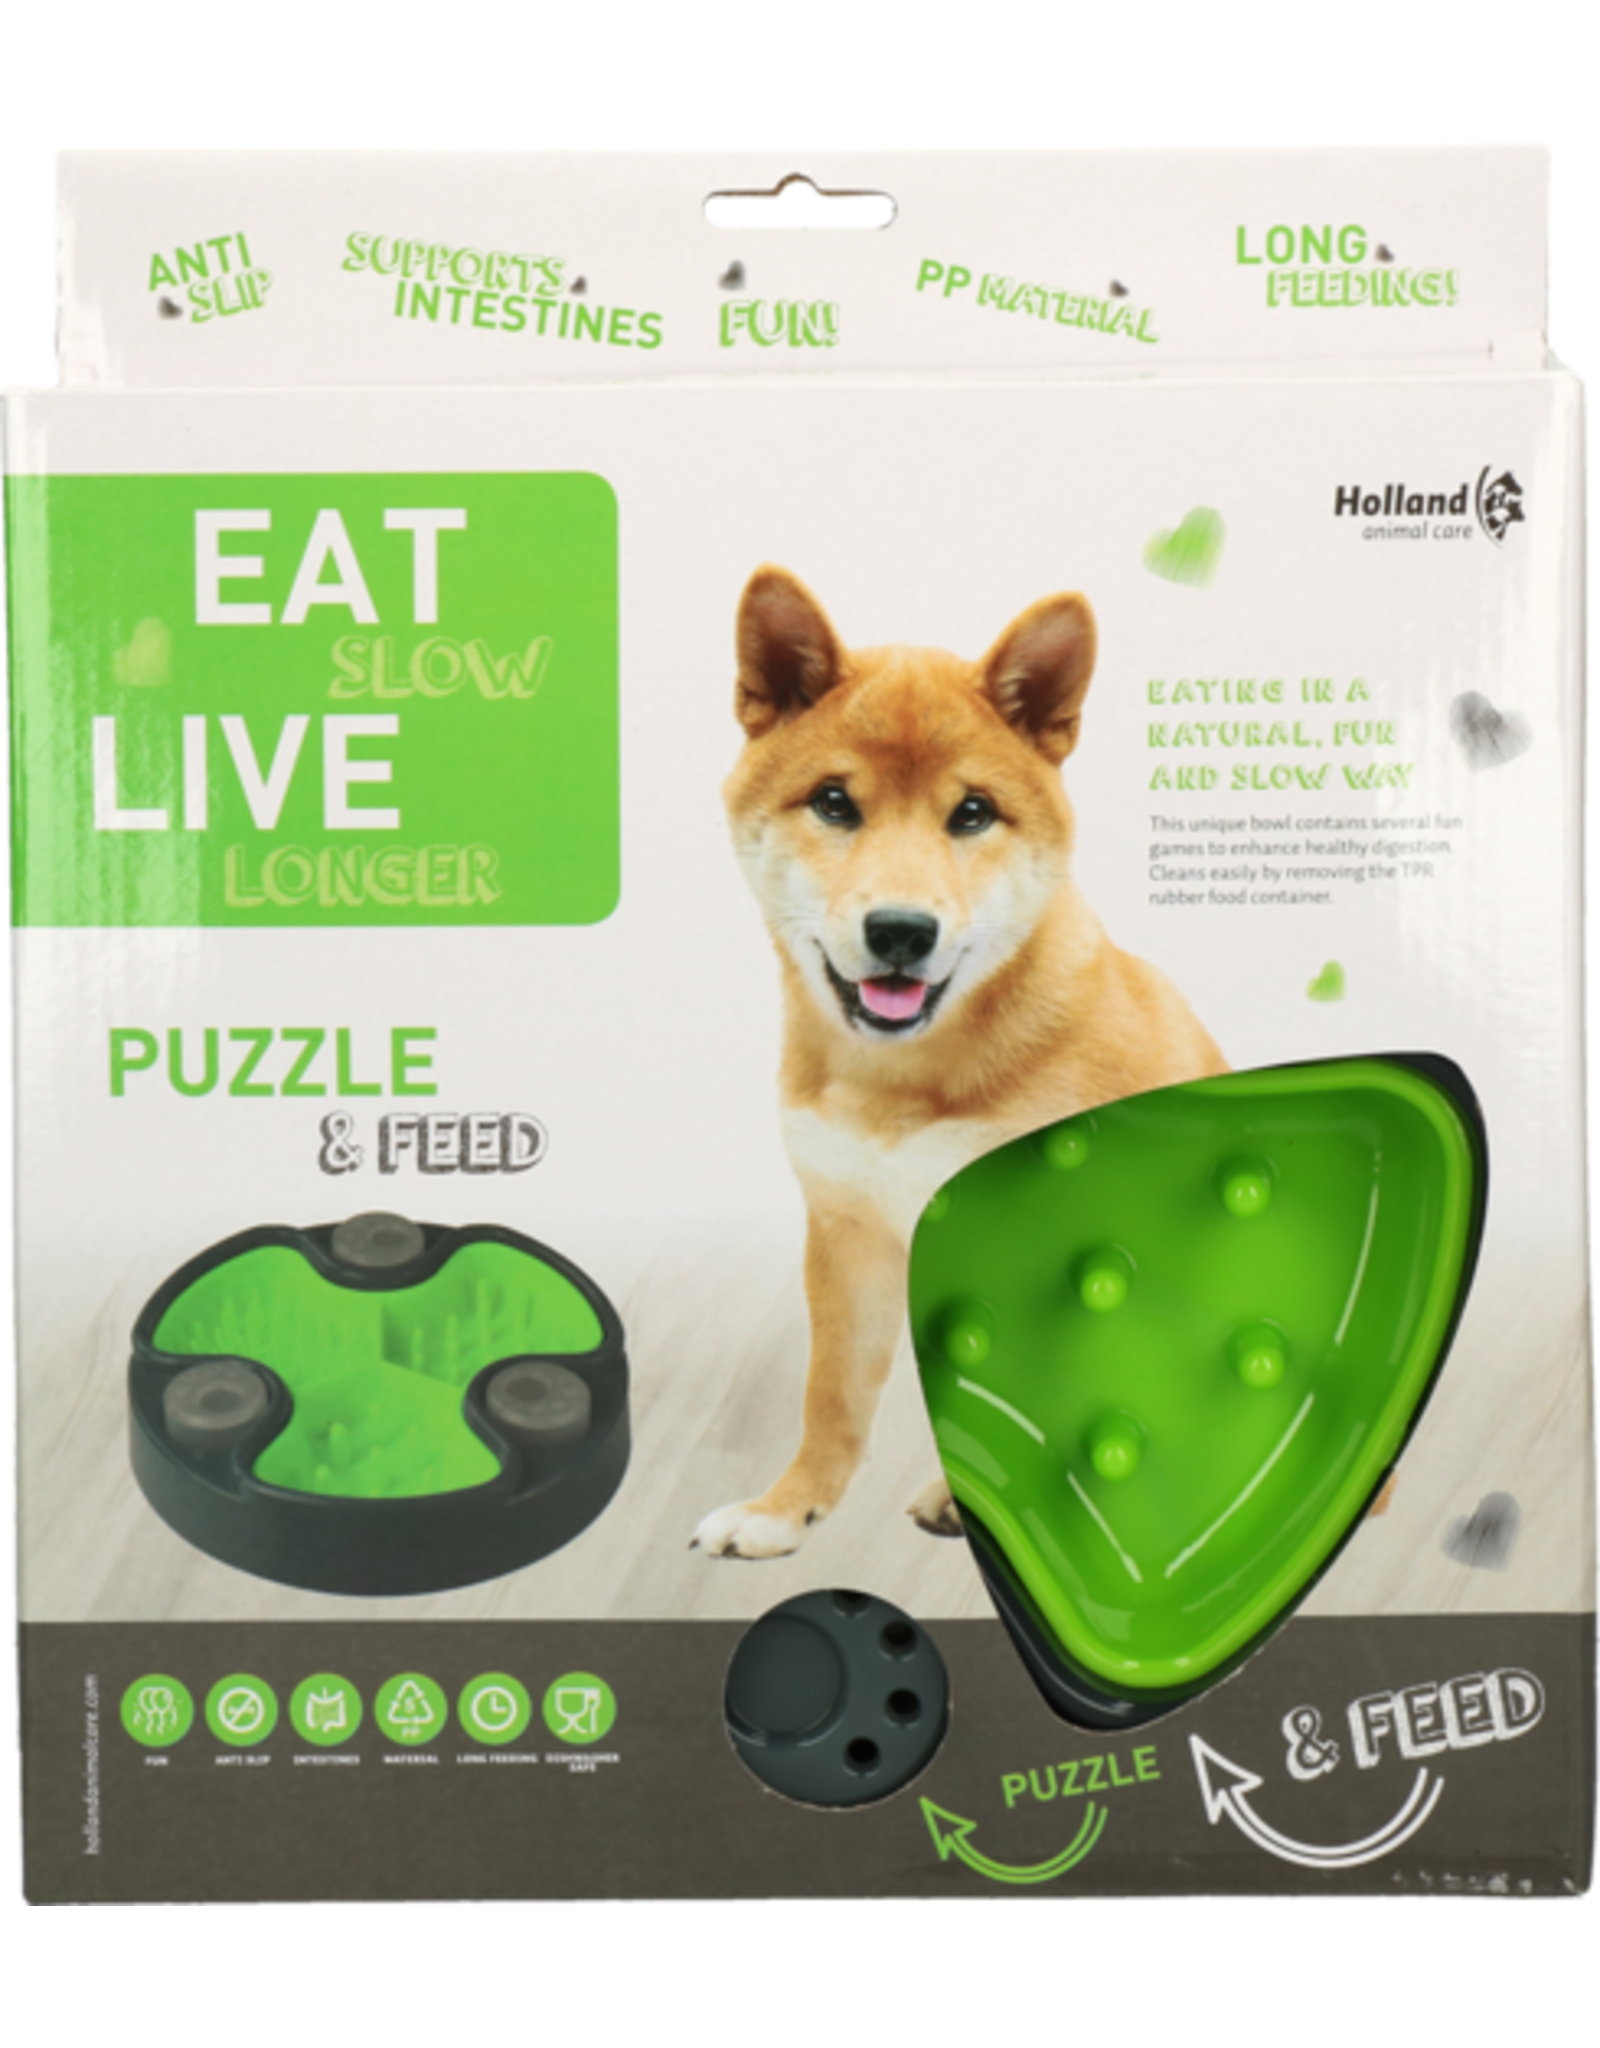 Eat Slow Live Longer Puzzle and Feed Green (anti-schrok-bak)